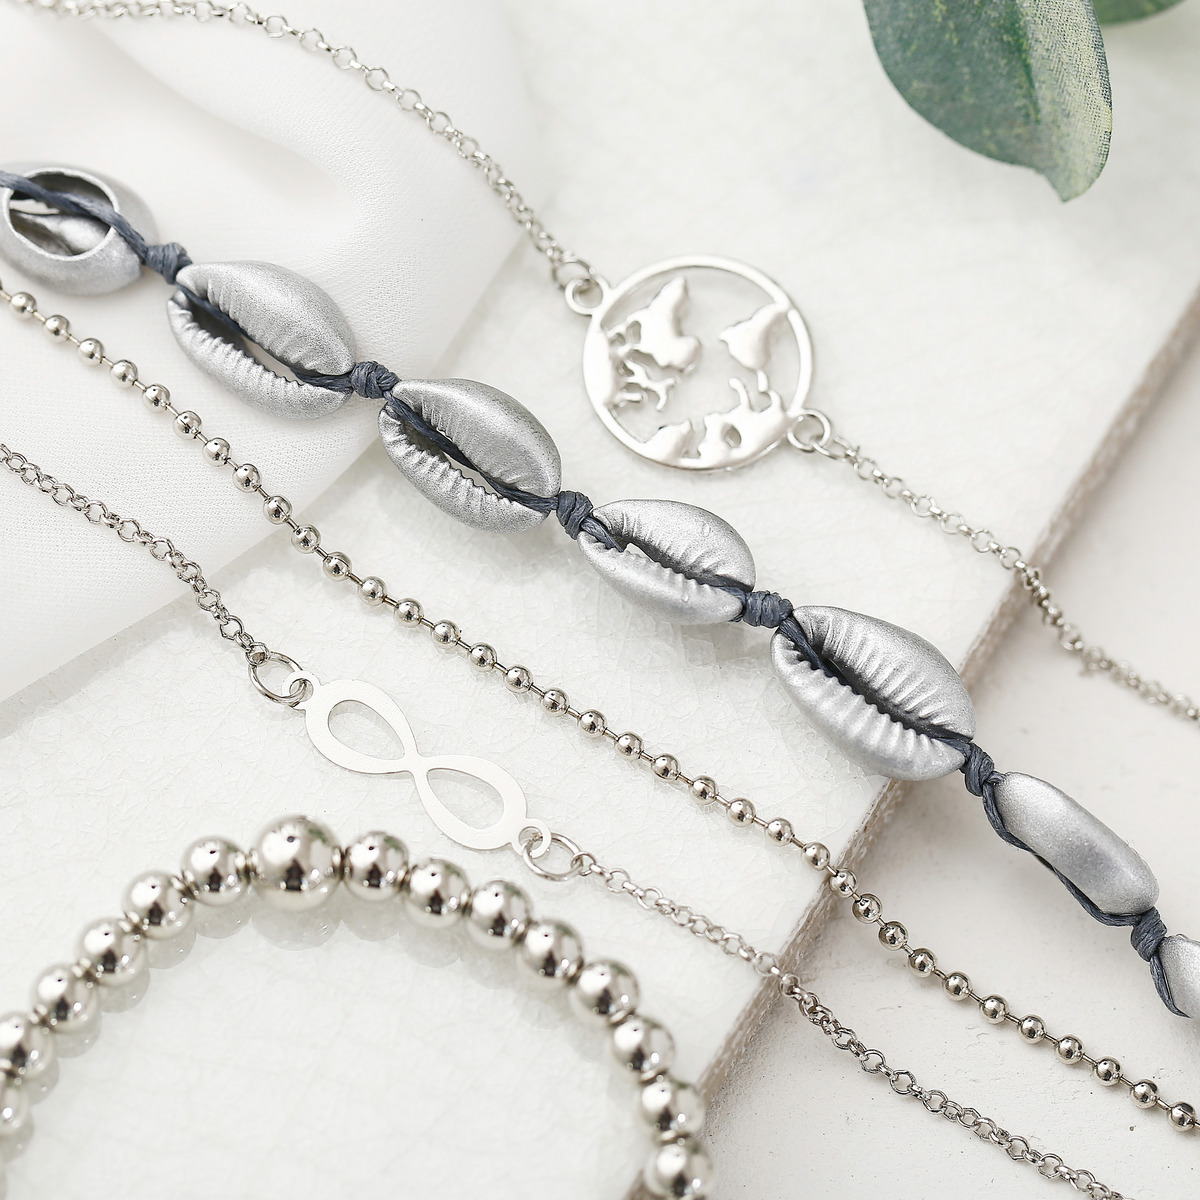 2019 New Bohemian Silver Chain Beads Bracelets Vintage Fashion Ocean Map Shell Bracelets Bangles Sets For Women Jewelry in Charm Bracelets from Jewelry Accessories